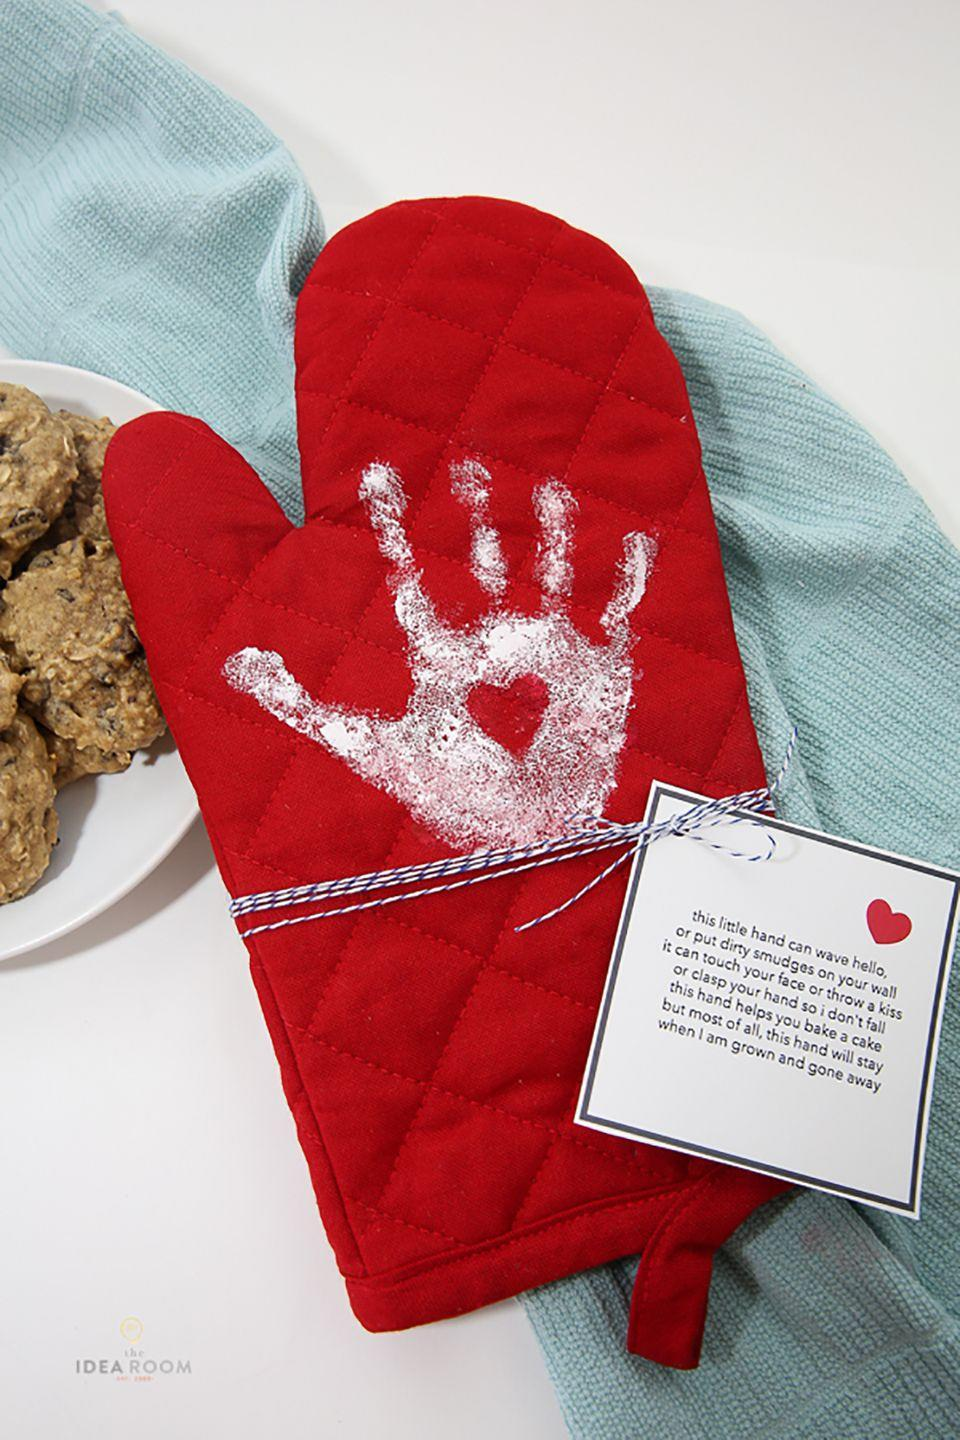 "<p>This craft couldn't be simpler, but preserving their little handprint on an oven mitt makes for a special gift she'll cherish for years.</p><p><strong>Get the tutorial at <a href=""http://www.theidearoom.net/handprint-oven-mitt"" rel=""nofollow noopener"" target=""_blank"" data-ylk=""slk:The Idea Room"" class=""link rapid-noclick-resp"">The Idea Room</a>.</strong></p>"